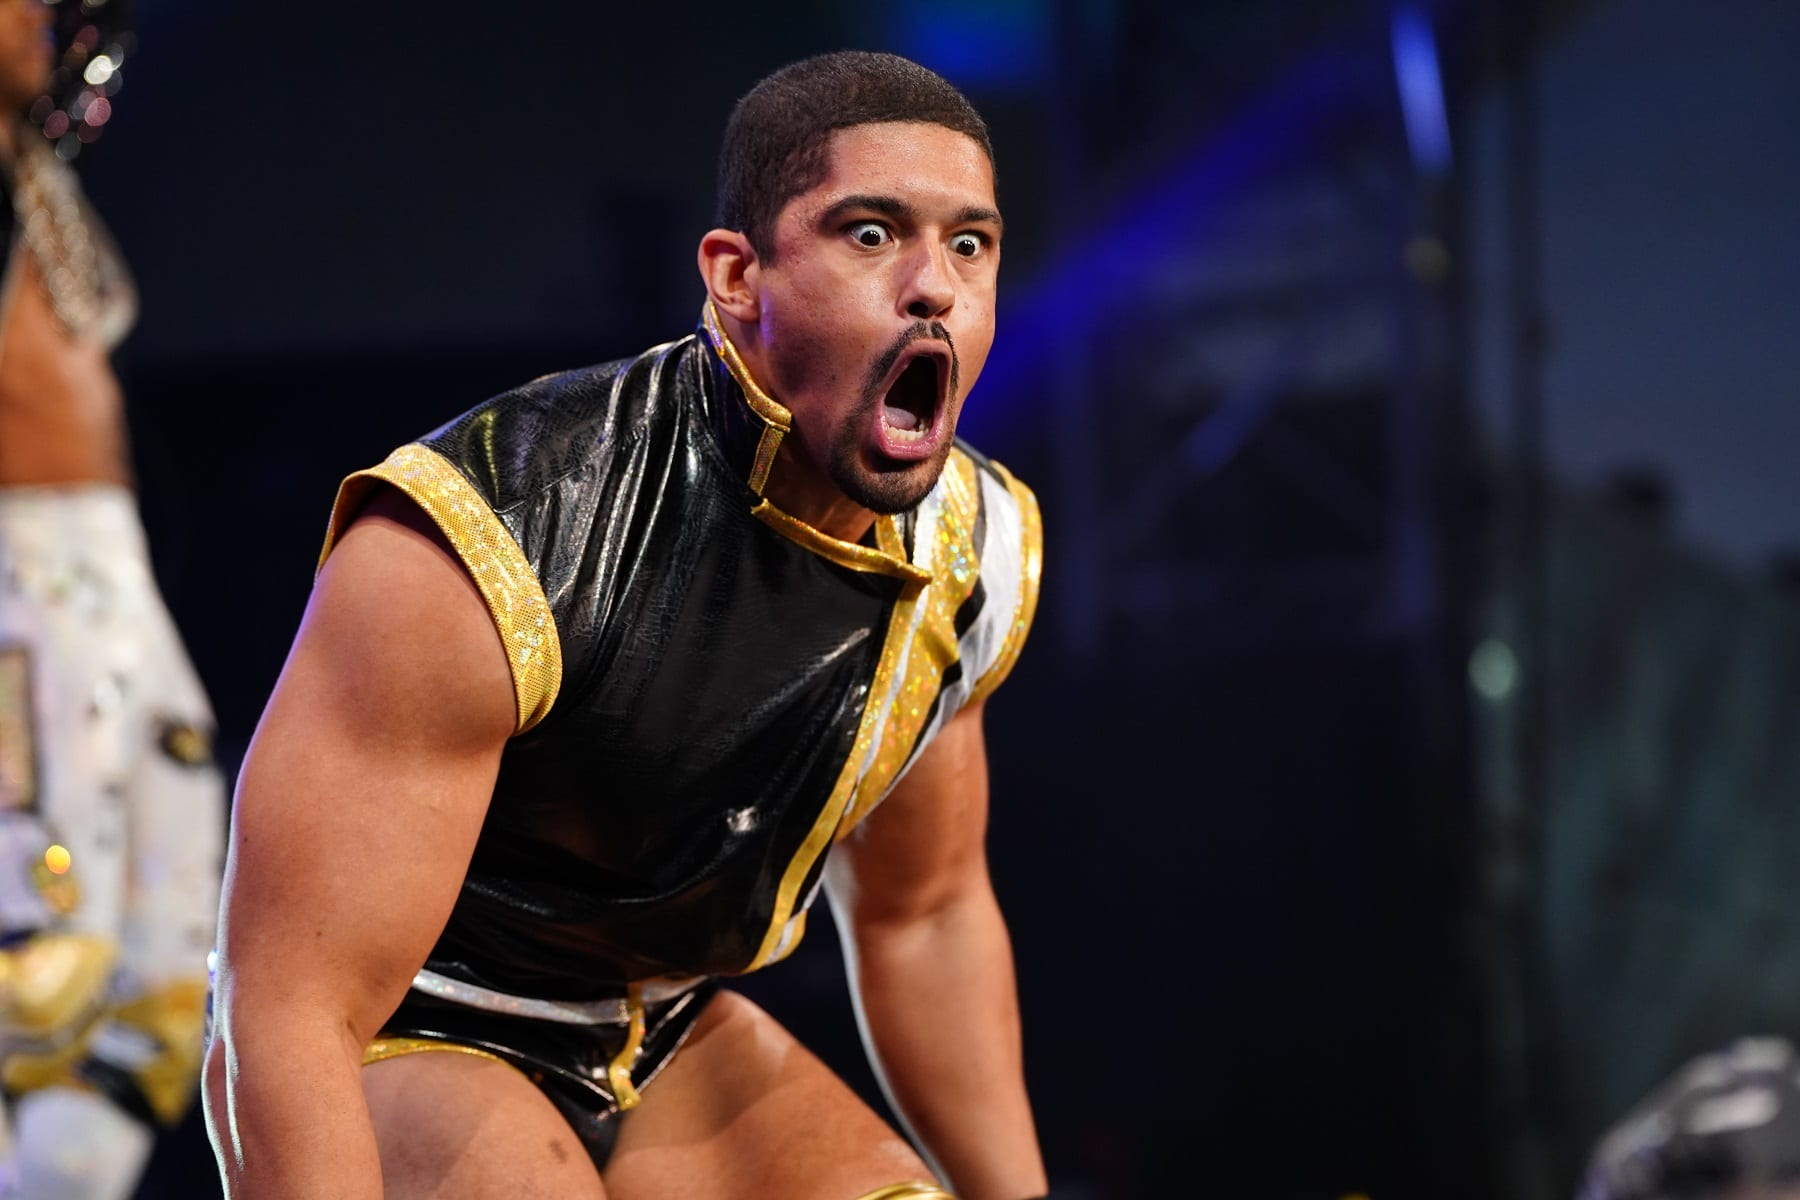 Anthony Bowens On The Formation Of The Acclaimed, Max Caster's Raps - Wrestling Inc.